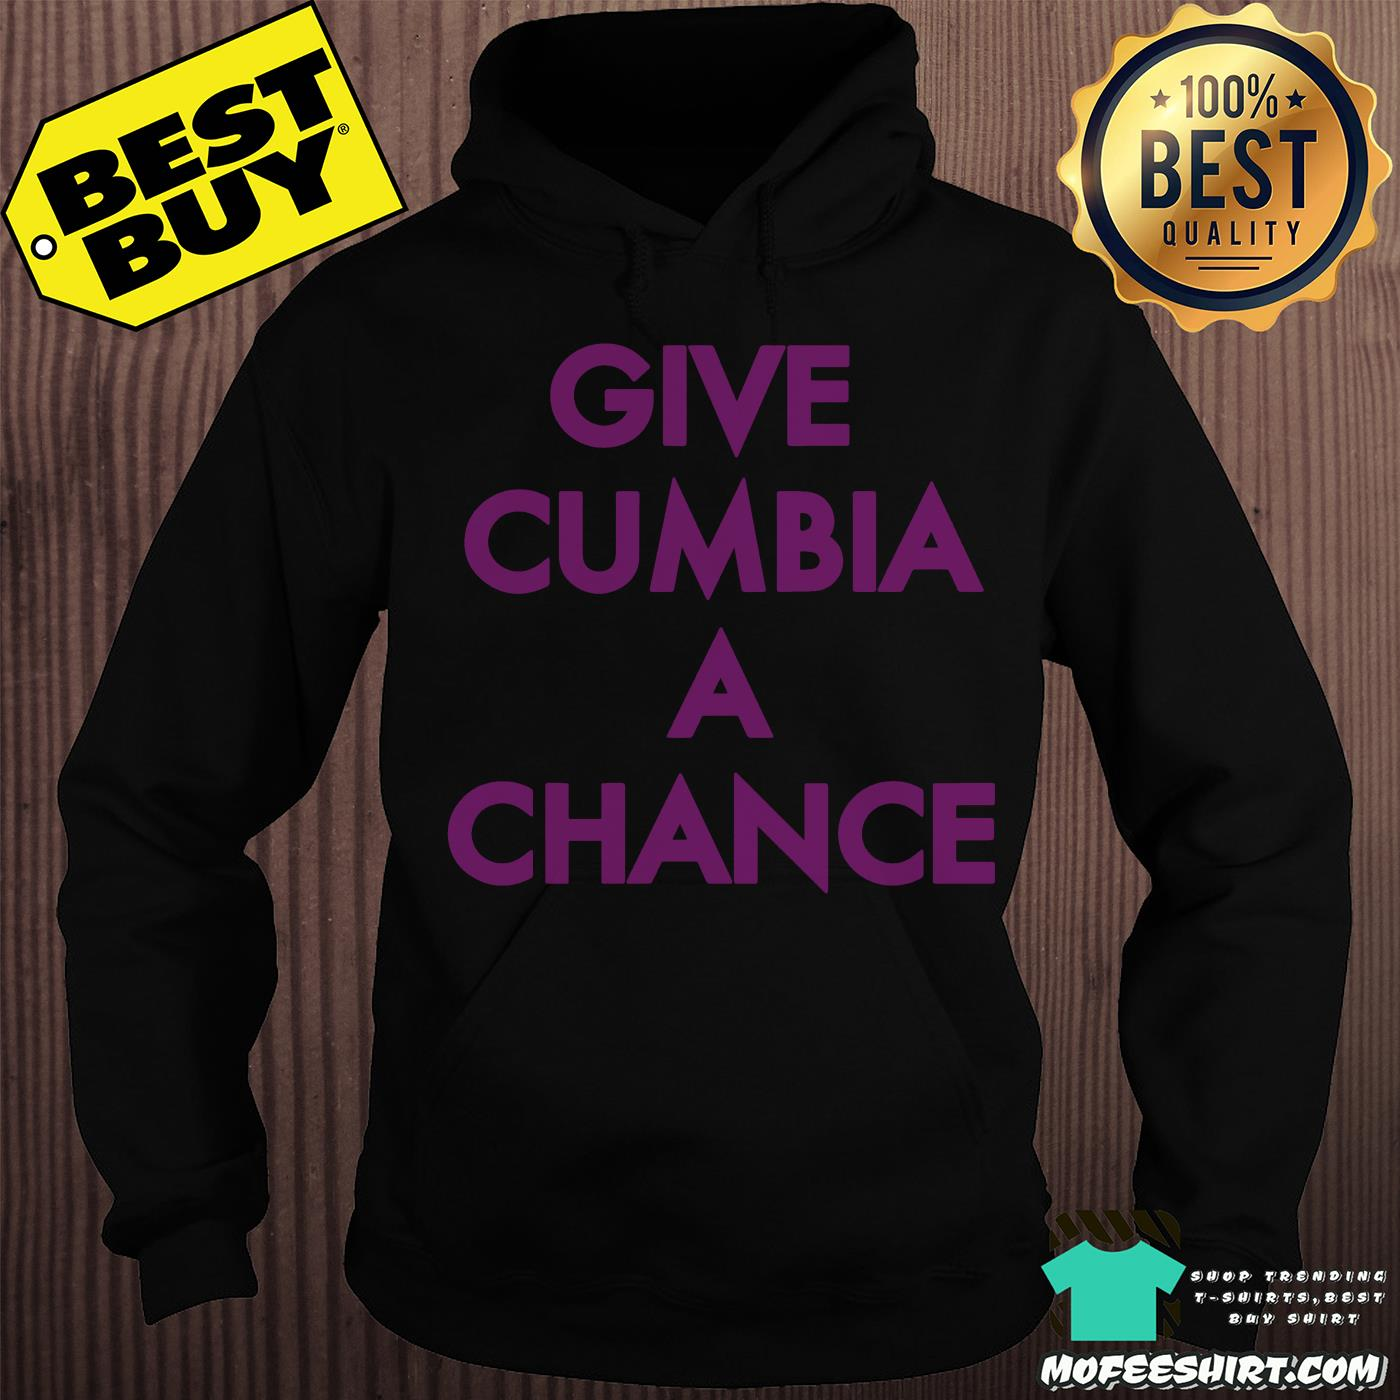 mexican institute of sound give cumbia a chance hoodie - Mexican Institute of Sound Give Cumbia a chance shirt